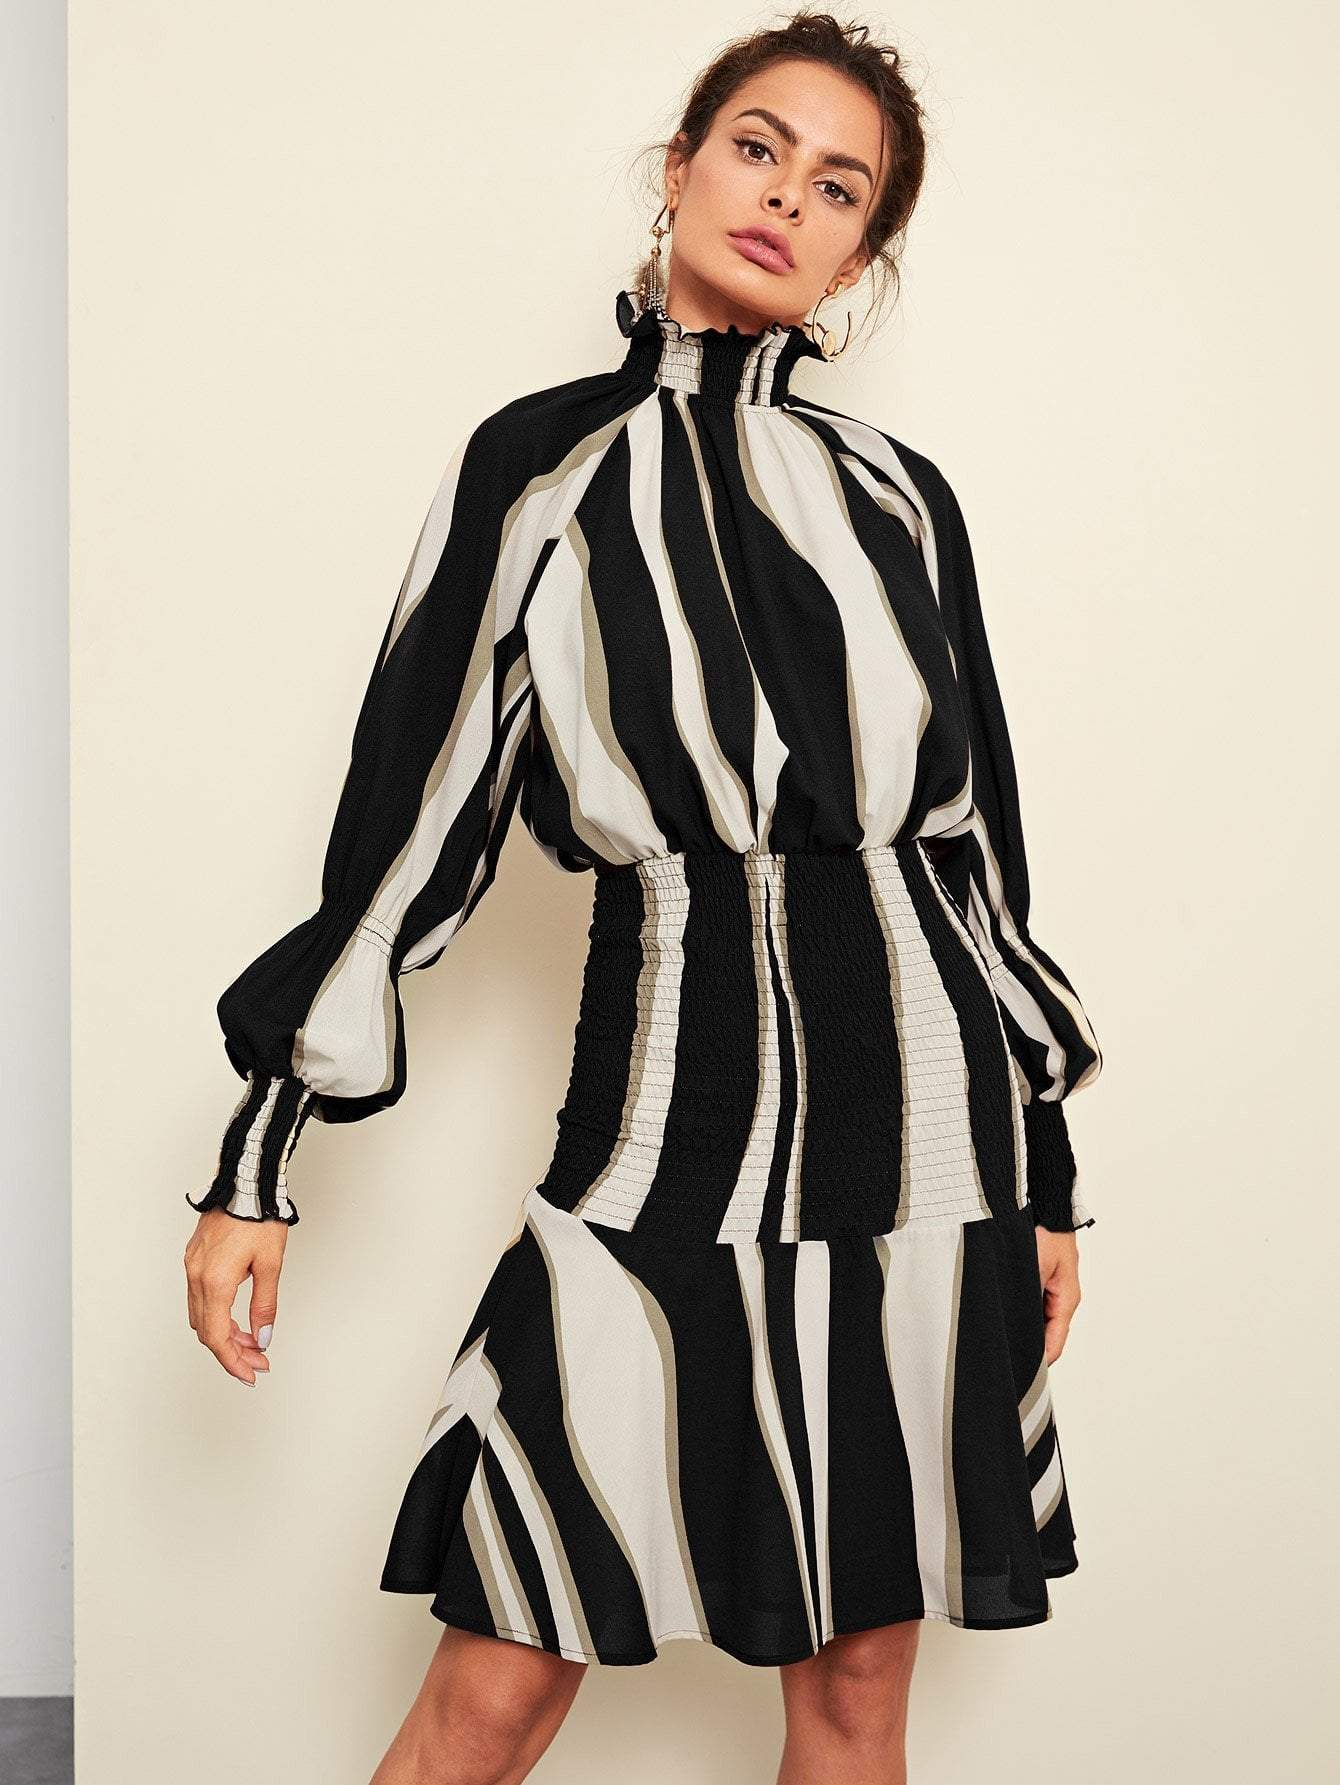 Shirred Panel Striped Dress - LoveSylvester